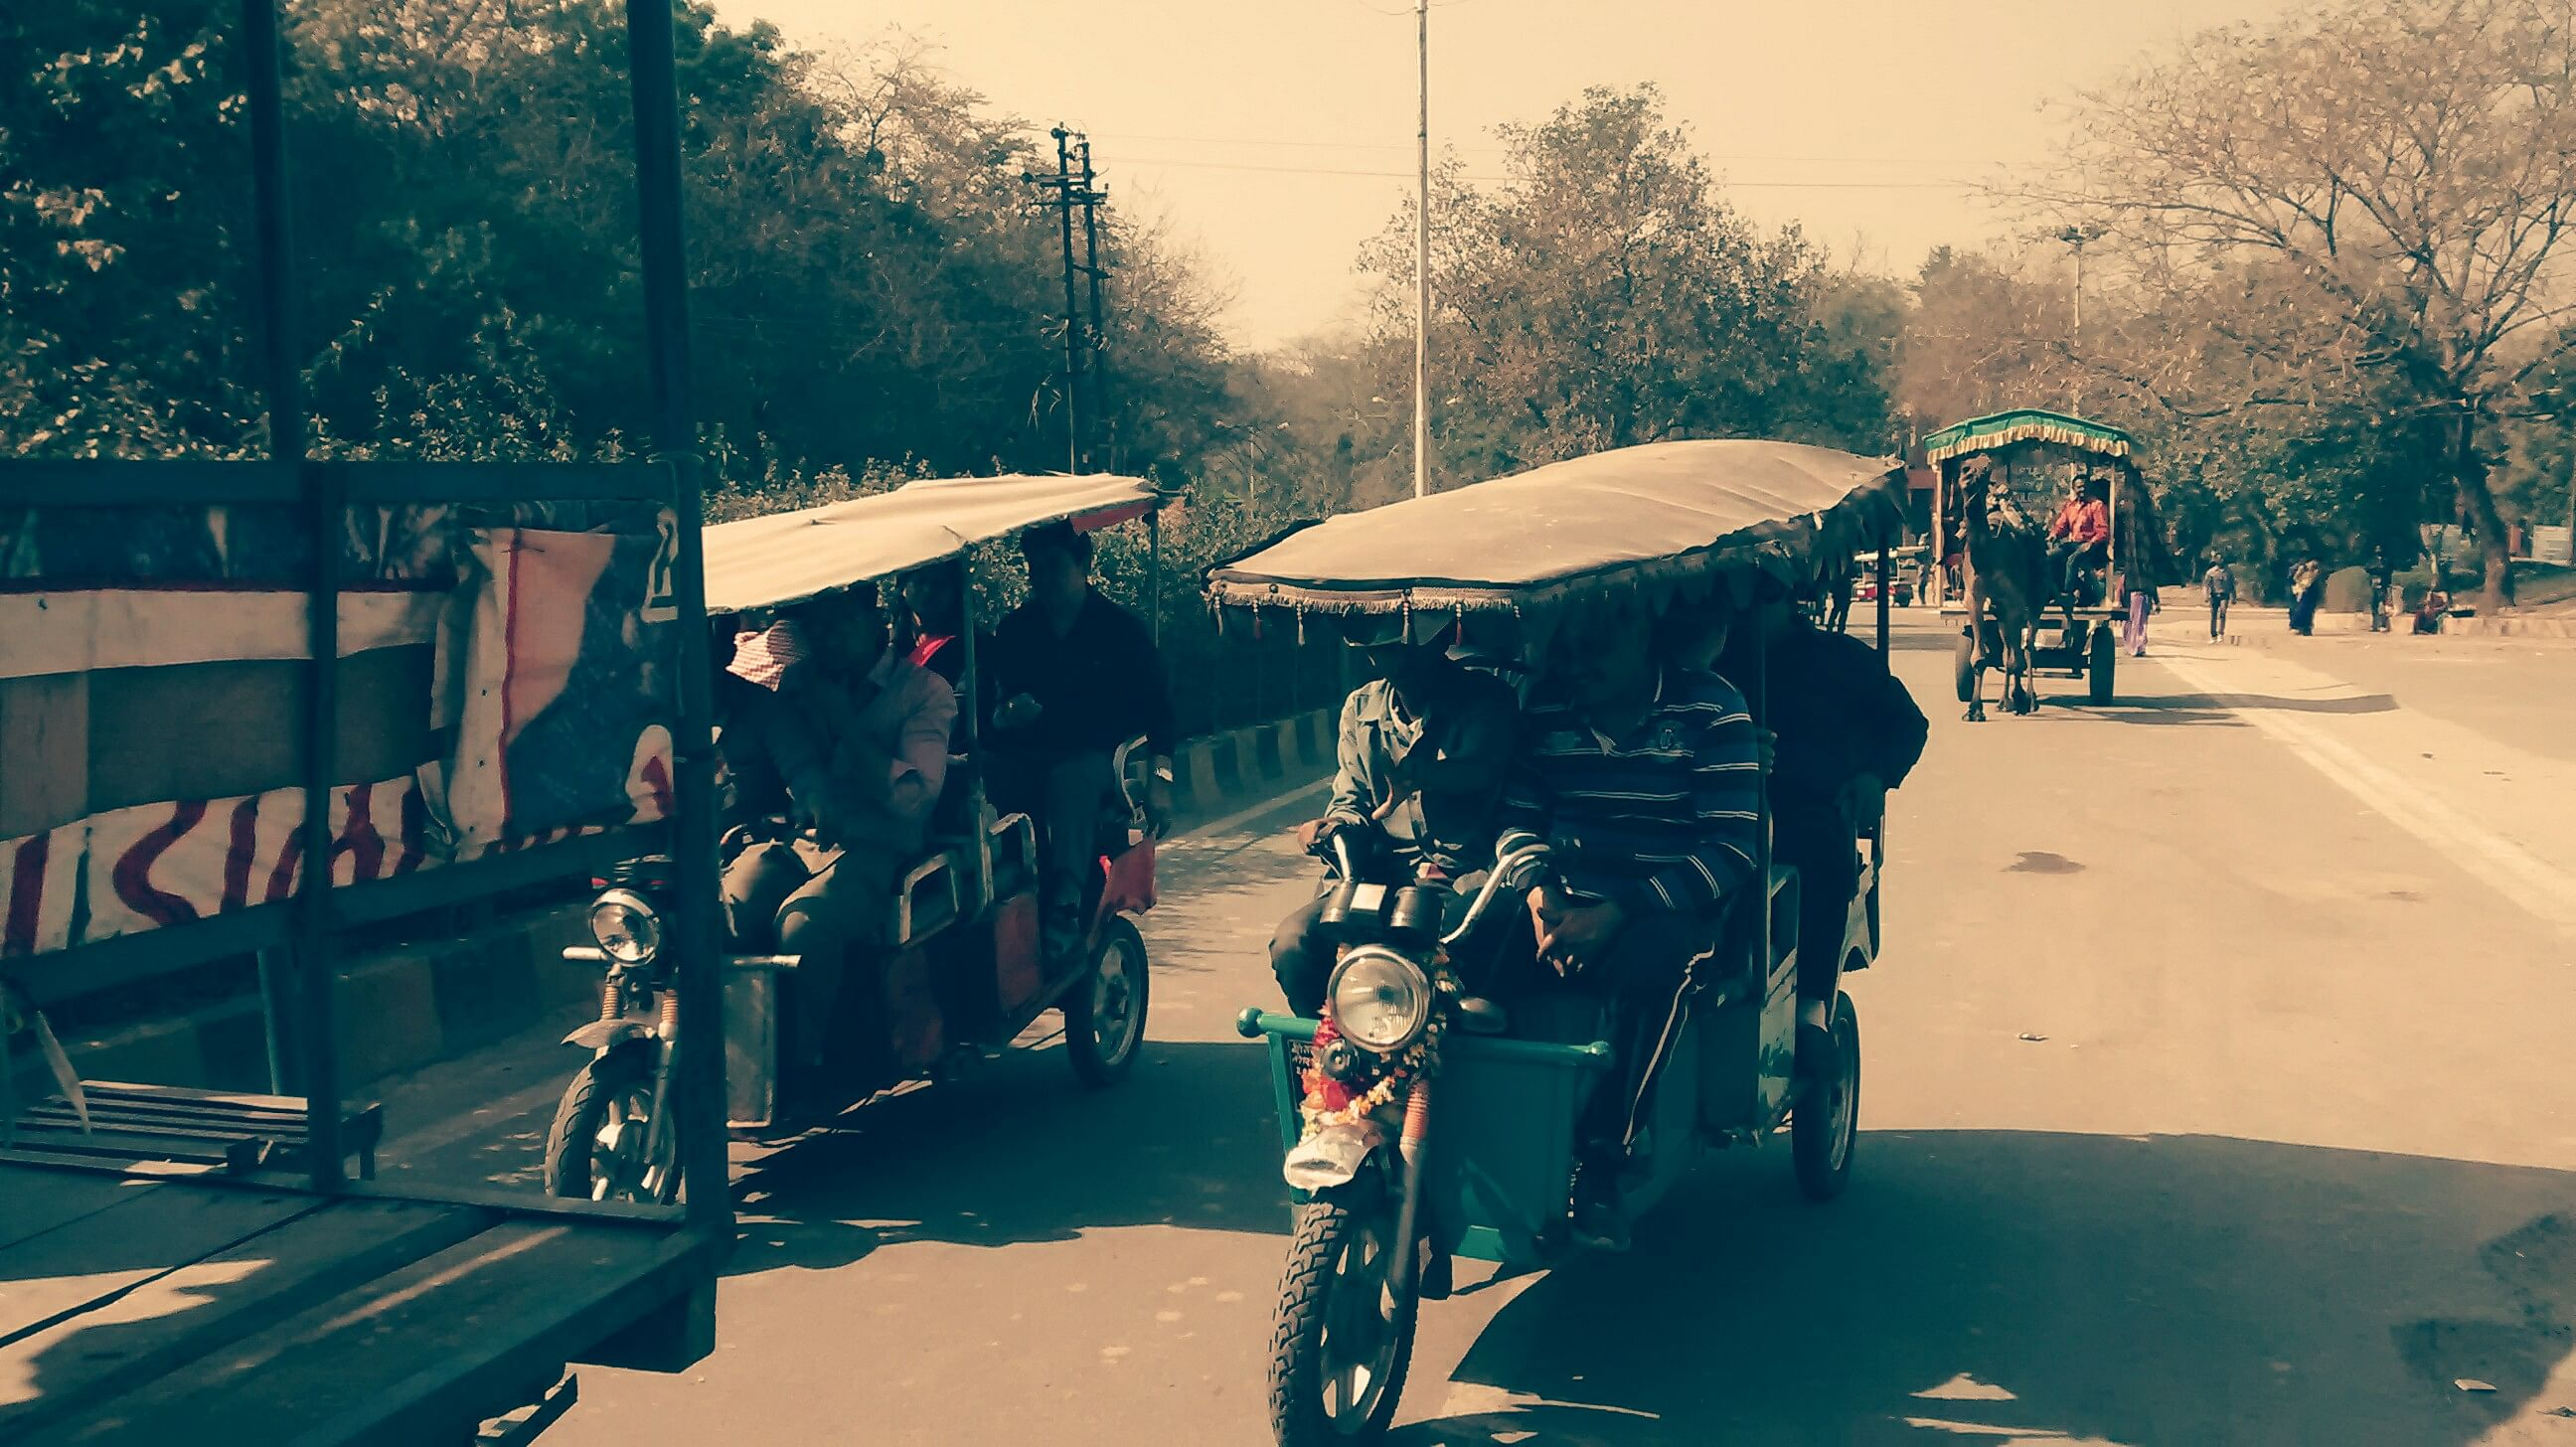 The rickshaws are smoothly running in Agra